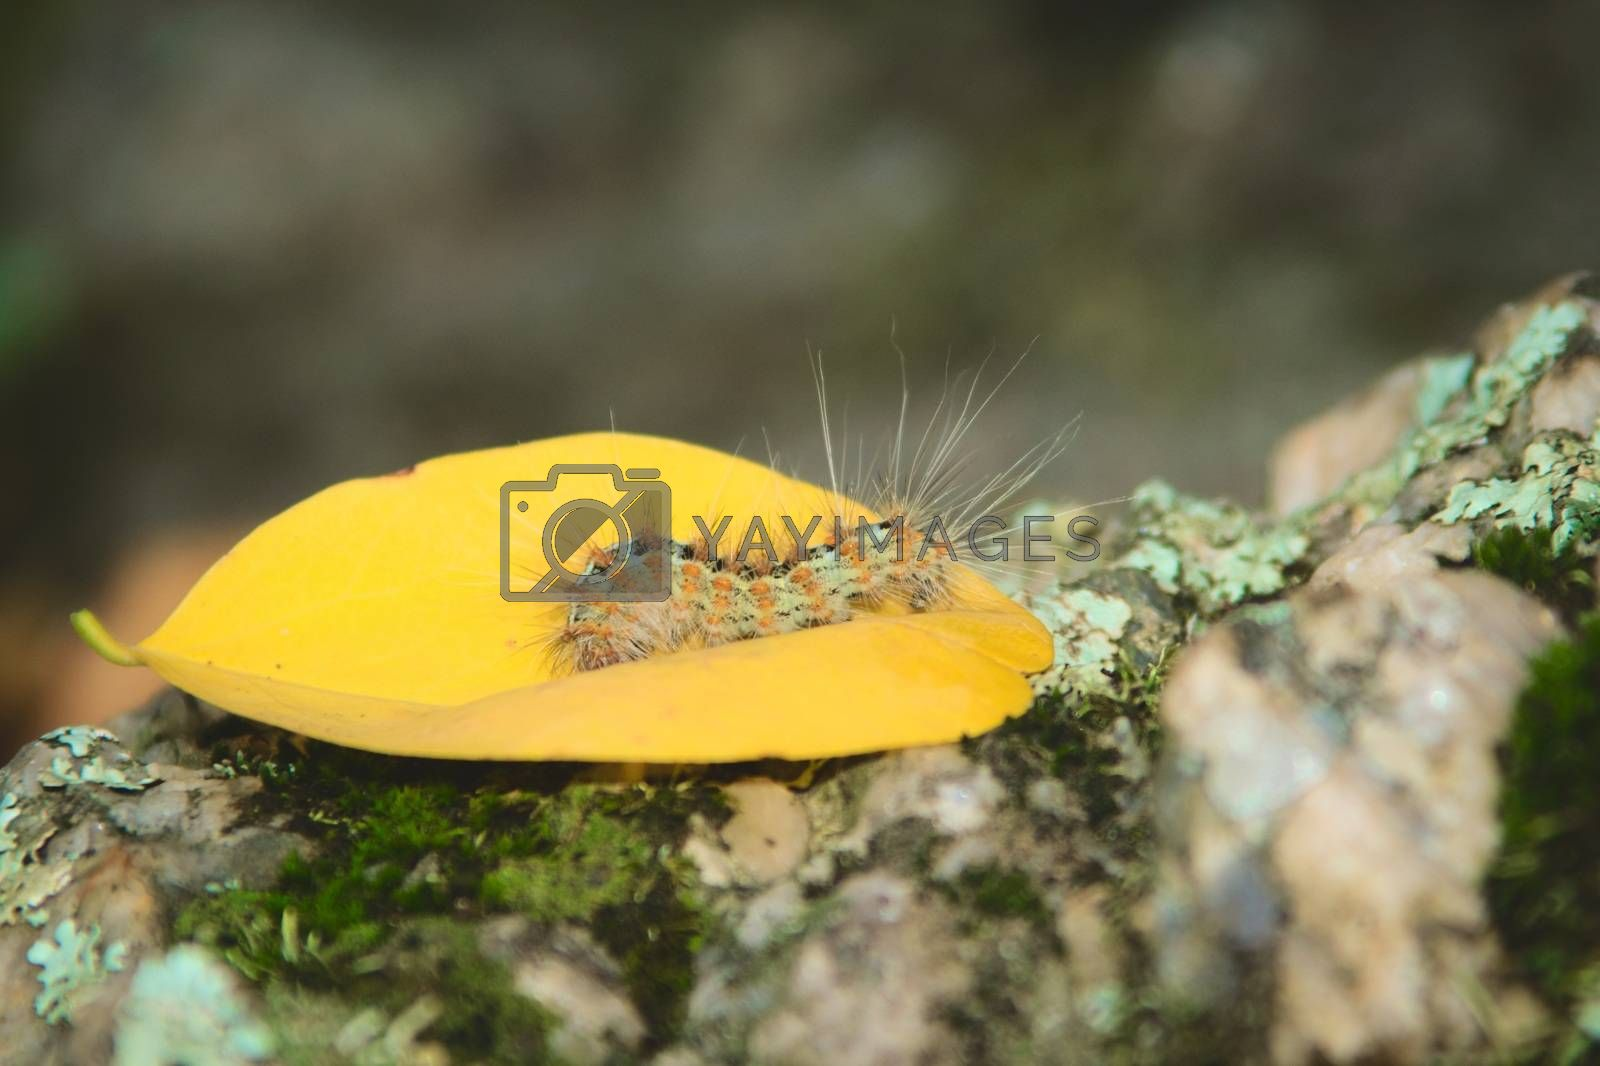 Royalty free image of Caterpillar covered in urticating hairs as a defense mechanism by hernan_hyper